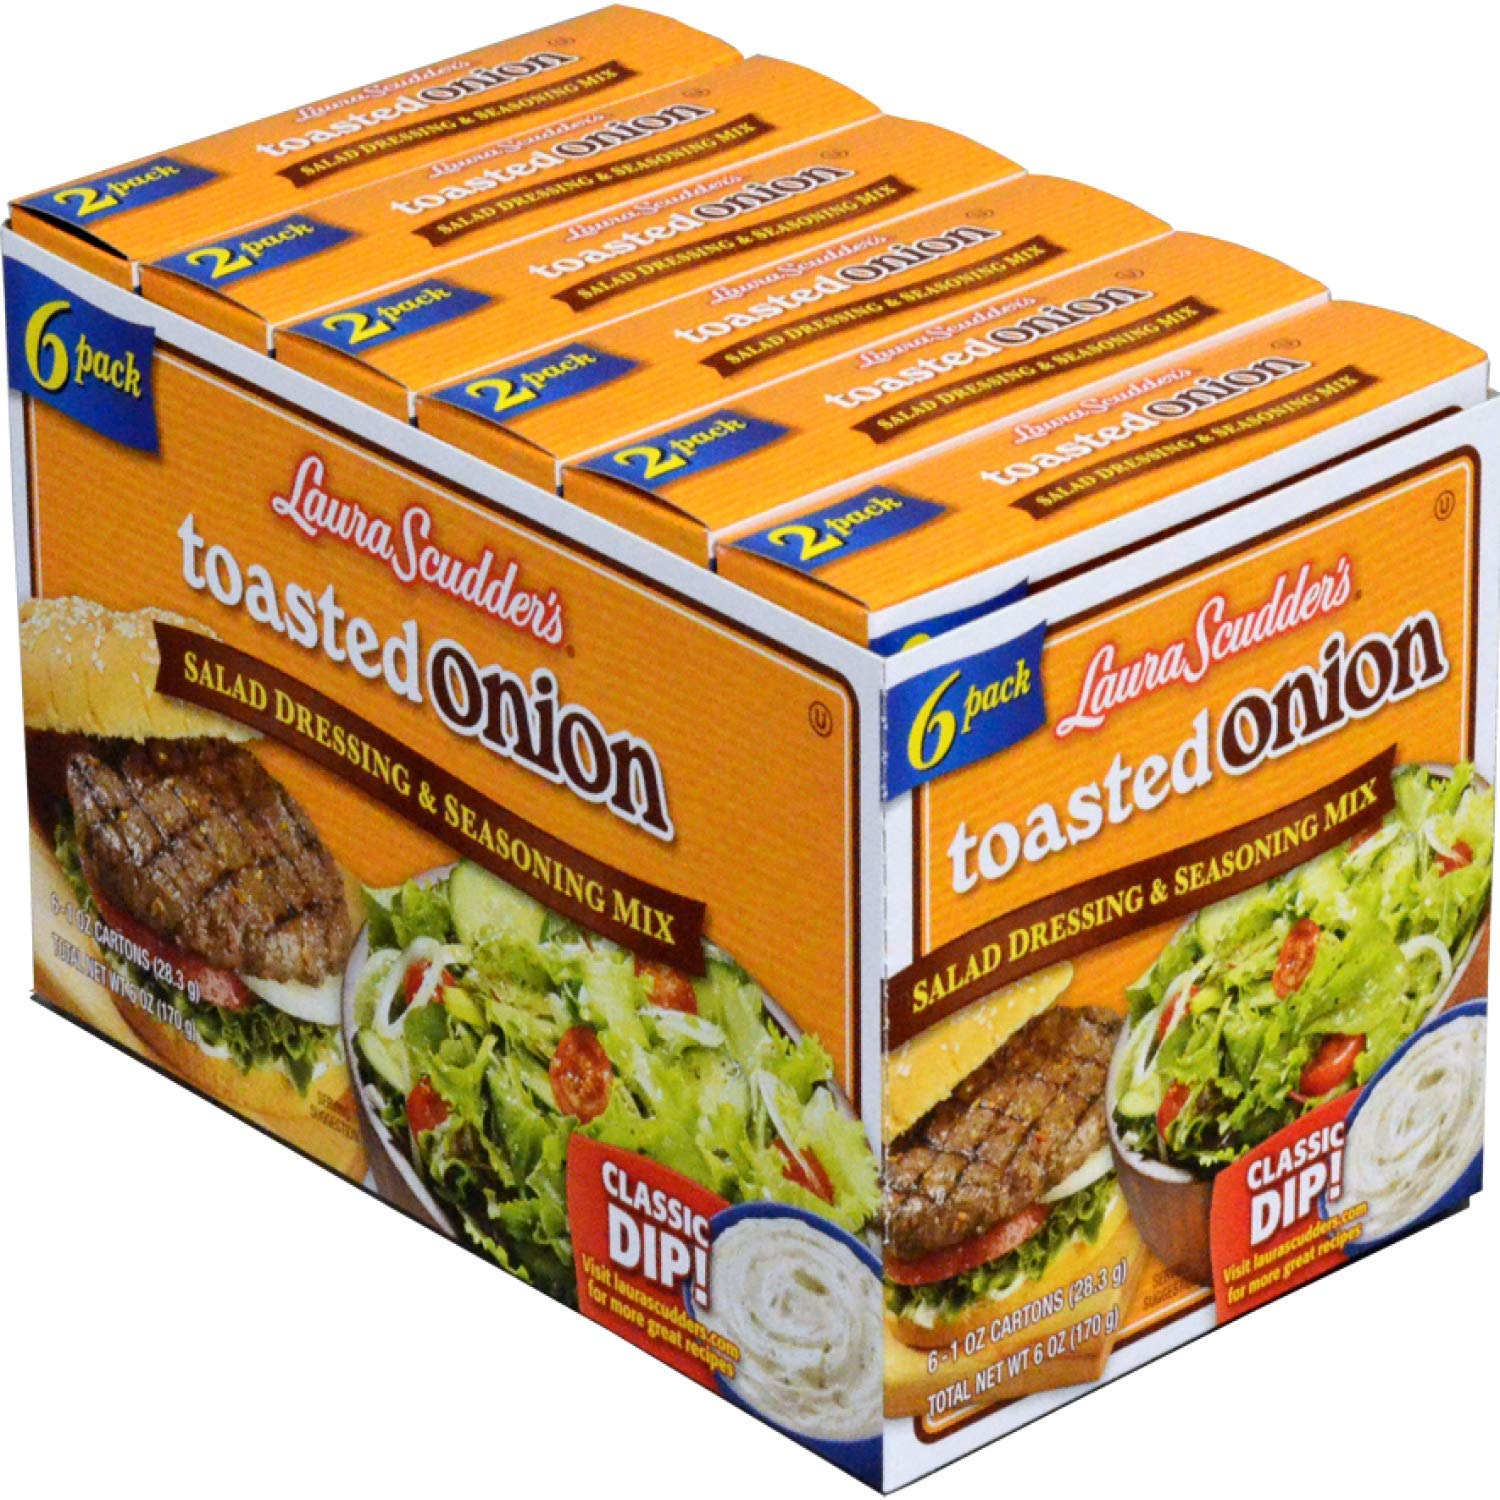 Laura Scudder's In a Limited time sale popularity Toasted Onion Salad Mix Seasoning 6-1 Dressing